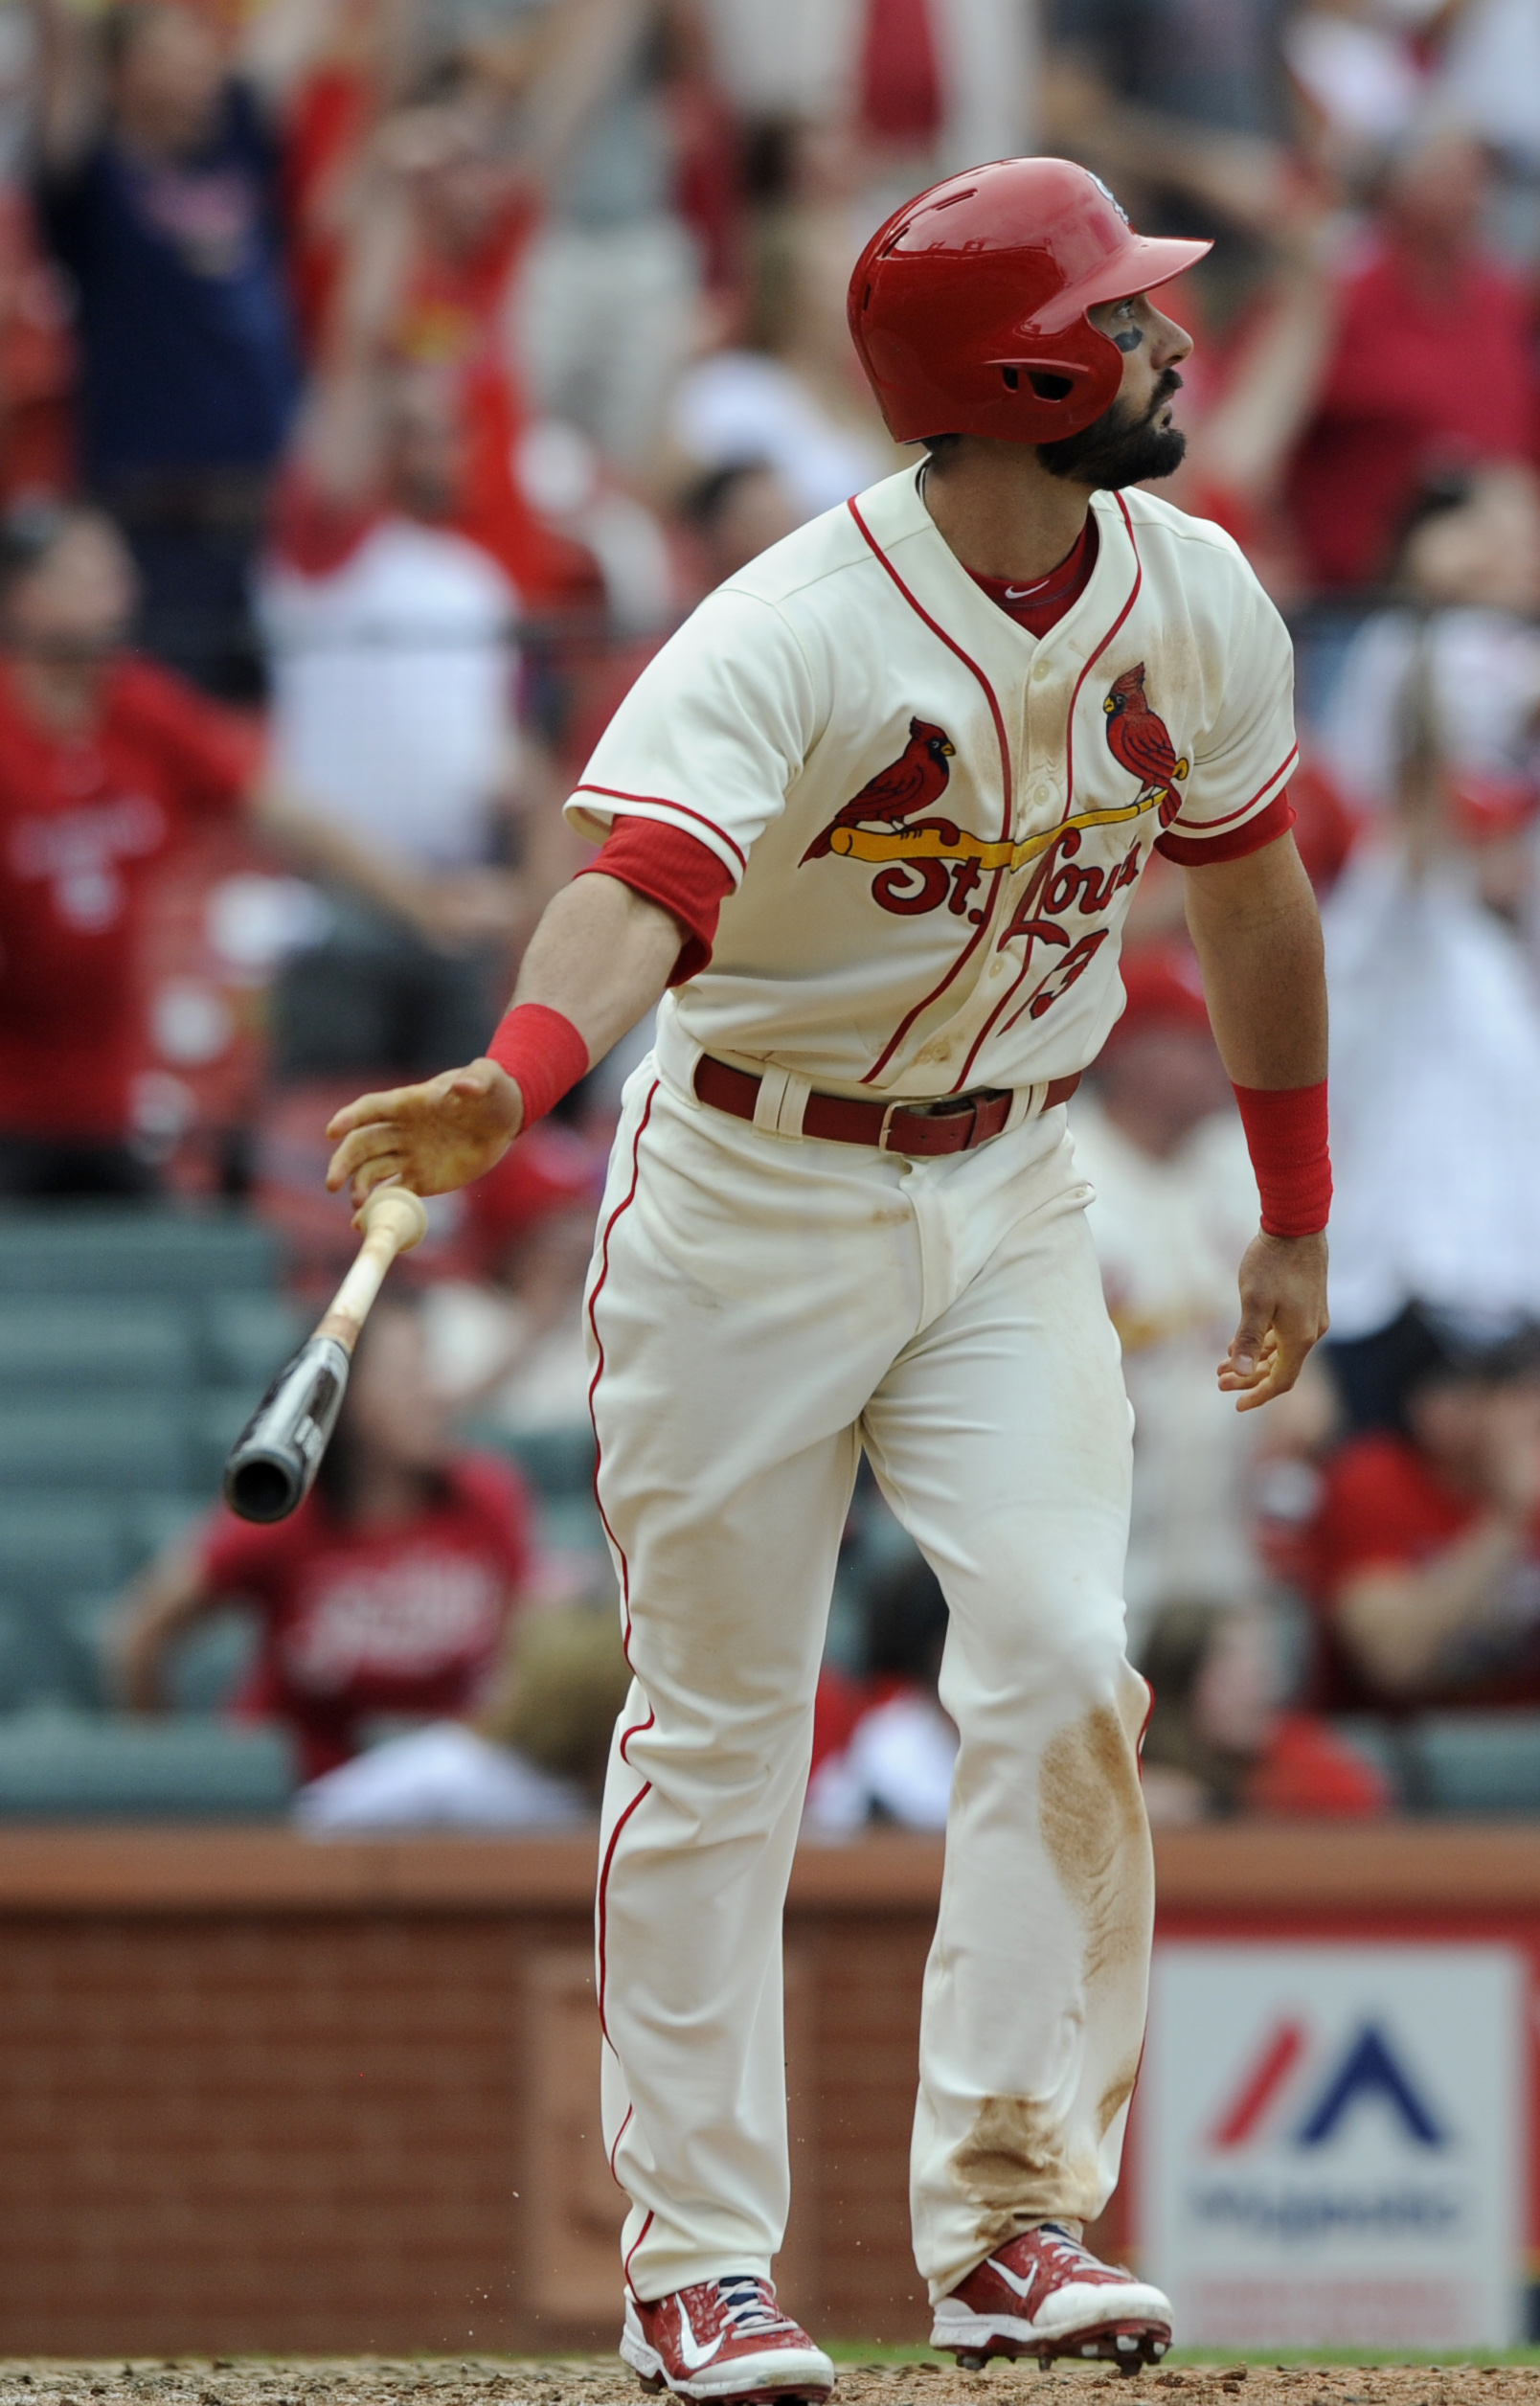 St. Louis Cardinals' Matt Carpenter watches his game-winning sacrifice fly to defeat the Pittsburgh Pirates 2-1 in the eleventh inning in a baseball game, Saturday, May 2, 2015, at Busch Stadium in St. Louis. (AP Photo/Bill Boyce)